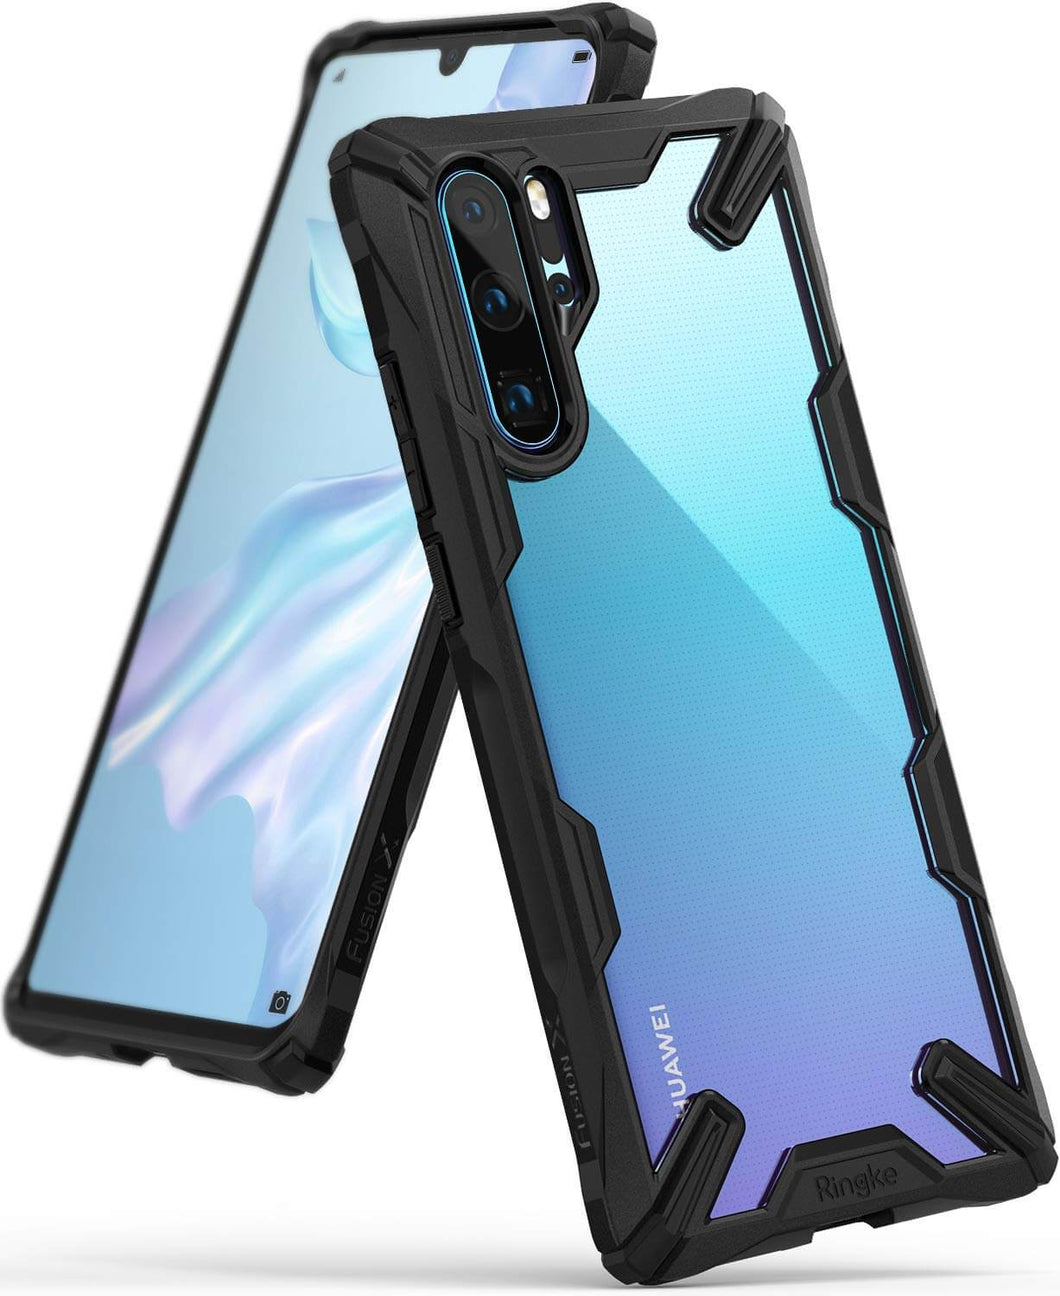 Best Huawei P30 Pro Bumper Case - Free Next Day Delivery